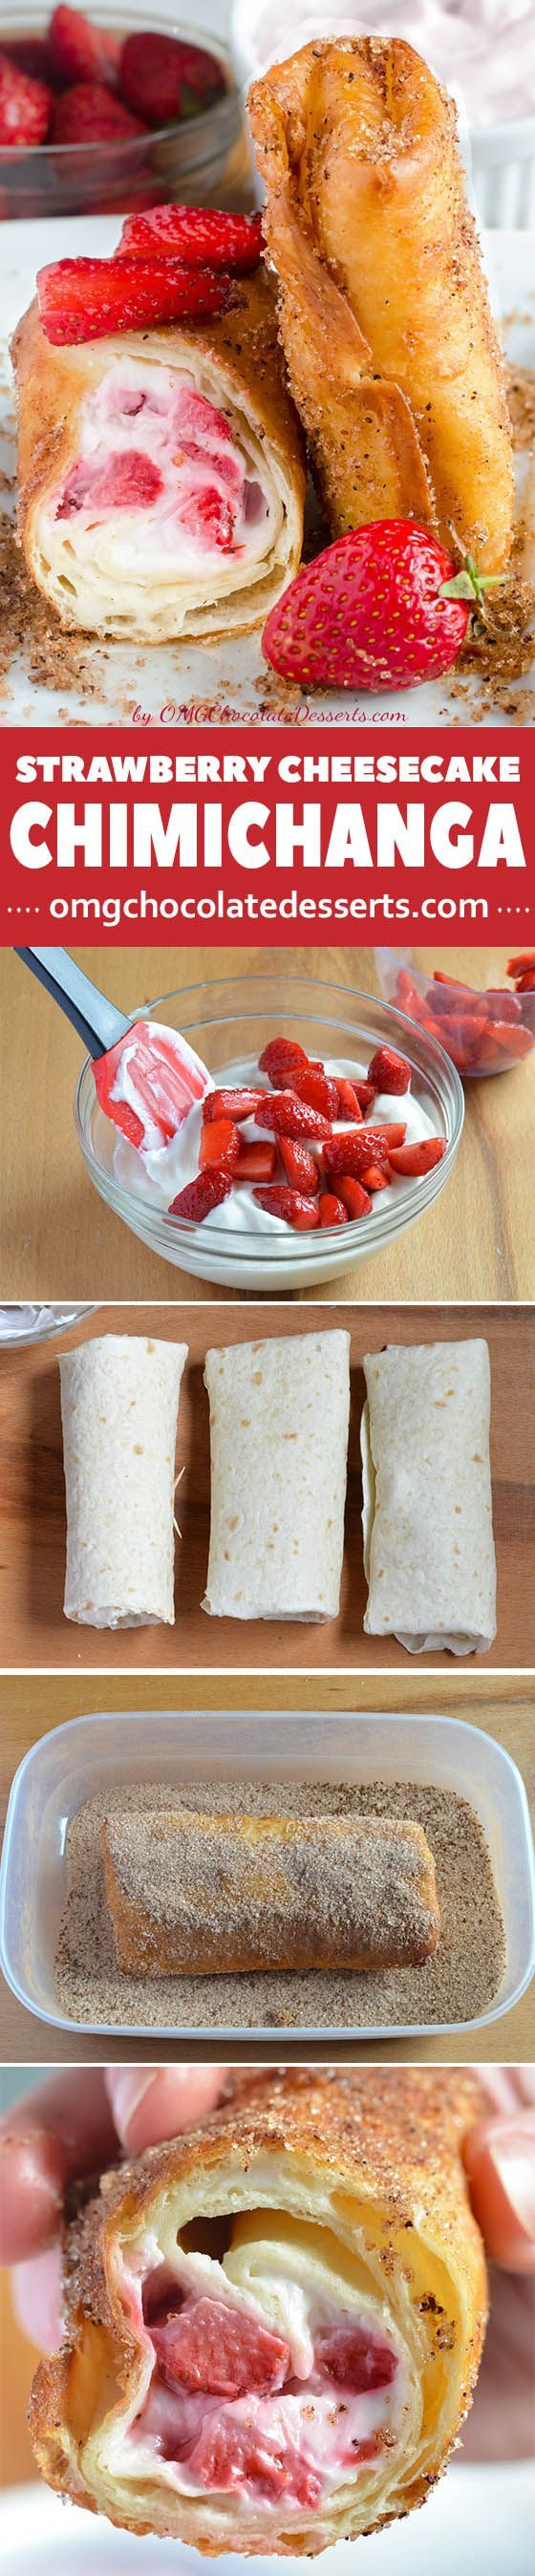 Need delicious and easy breakfast or easy dessert recipe - check why this U.S Southern chimichanga recipe with strawberry filling is best choice for you.